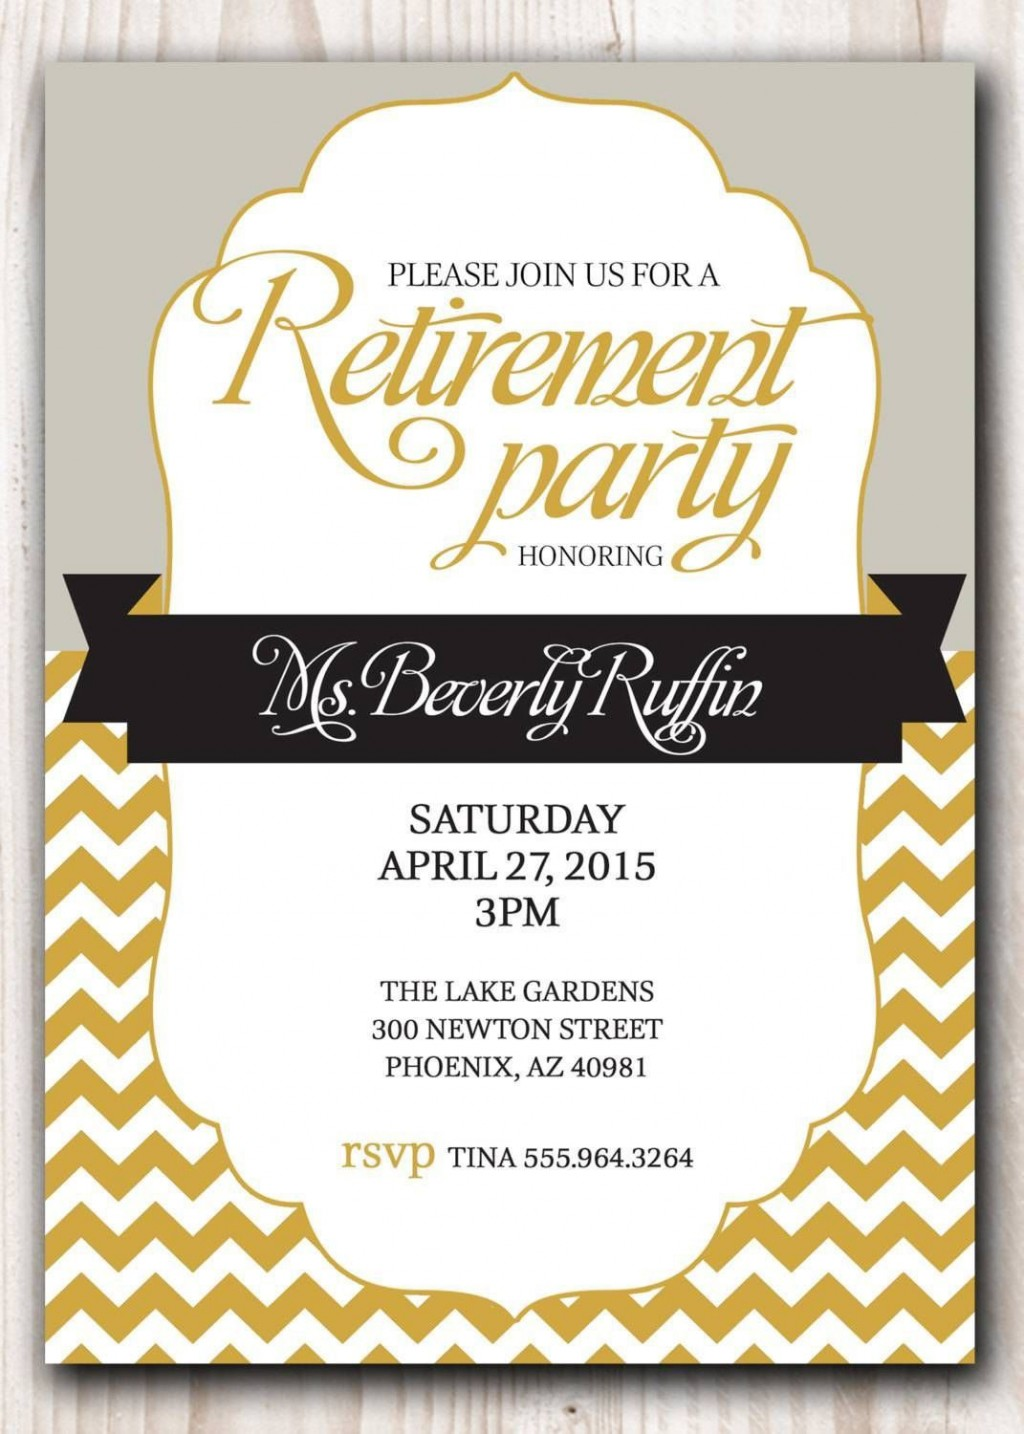 008 Staggering Retirement Party Invite Template High Resolution  Invitation Online M Word FreeLarge